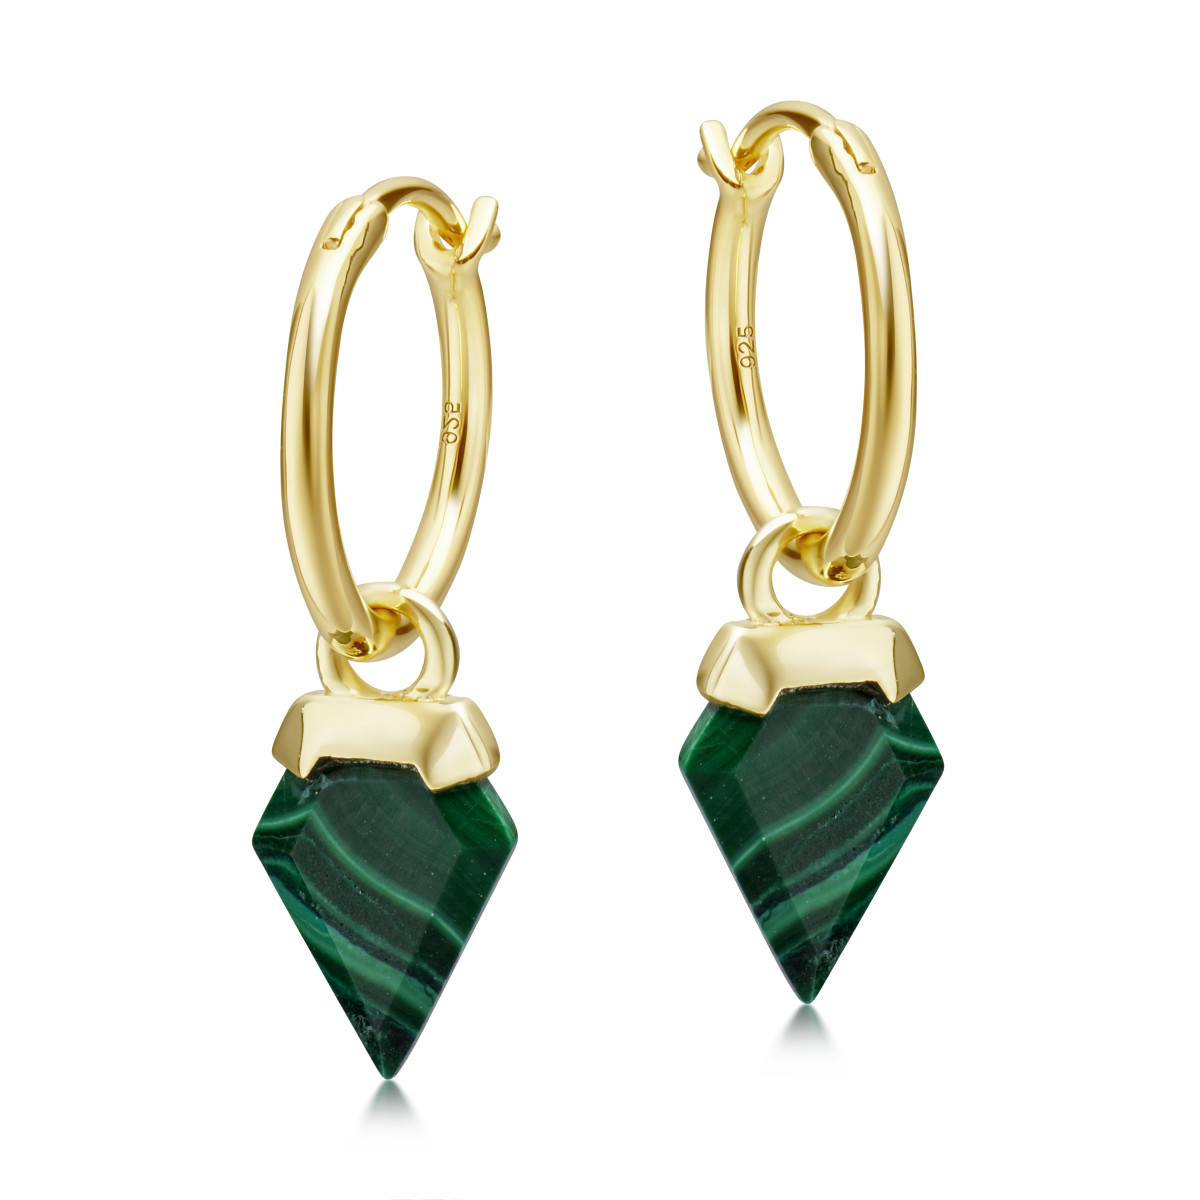 Earrings from Missoma's 'meaningful gemstones' collection. Photo: Courtesy of Missoma